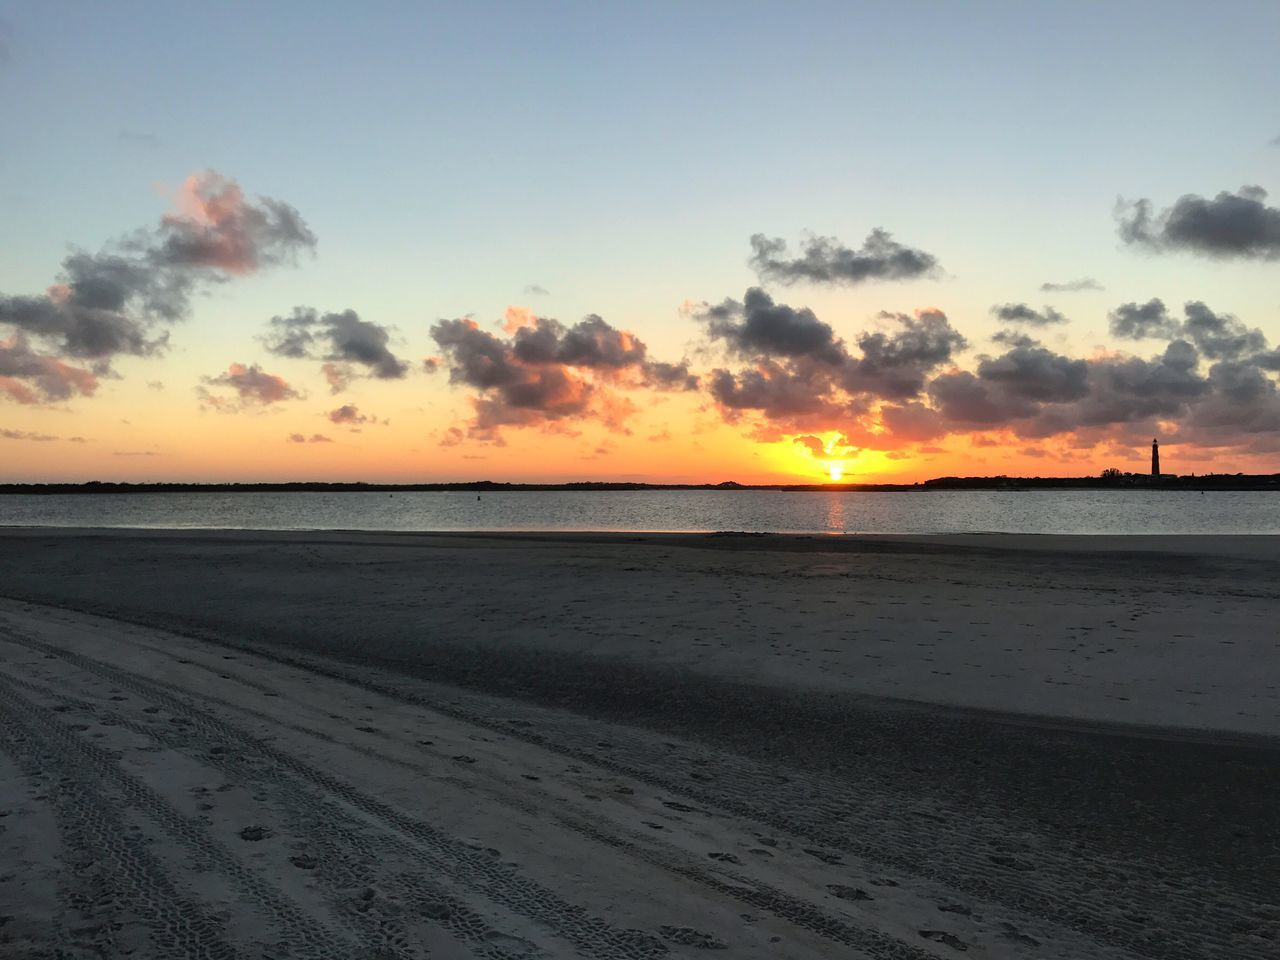 beach, sunset, sea, sand, scenics, nature, sky, tranquility, beauty in nature, tranquil scene, water, shore, horizon over water, idyllic, cloud - sky, no people, sun, silhouette, outdoors, day